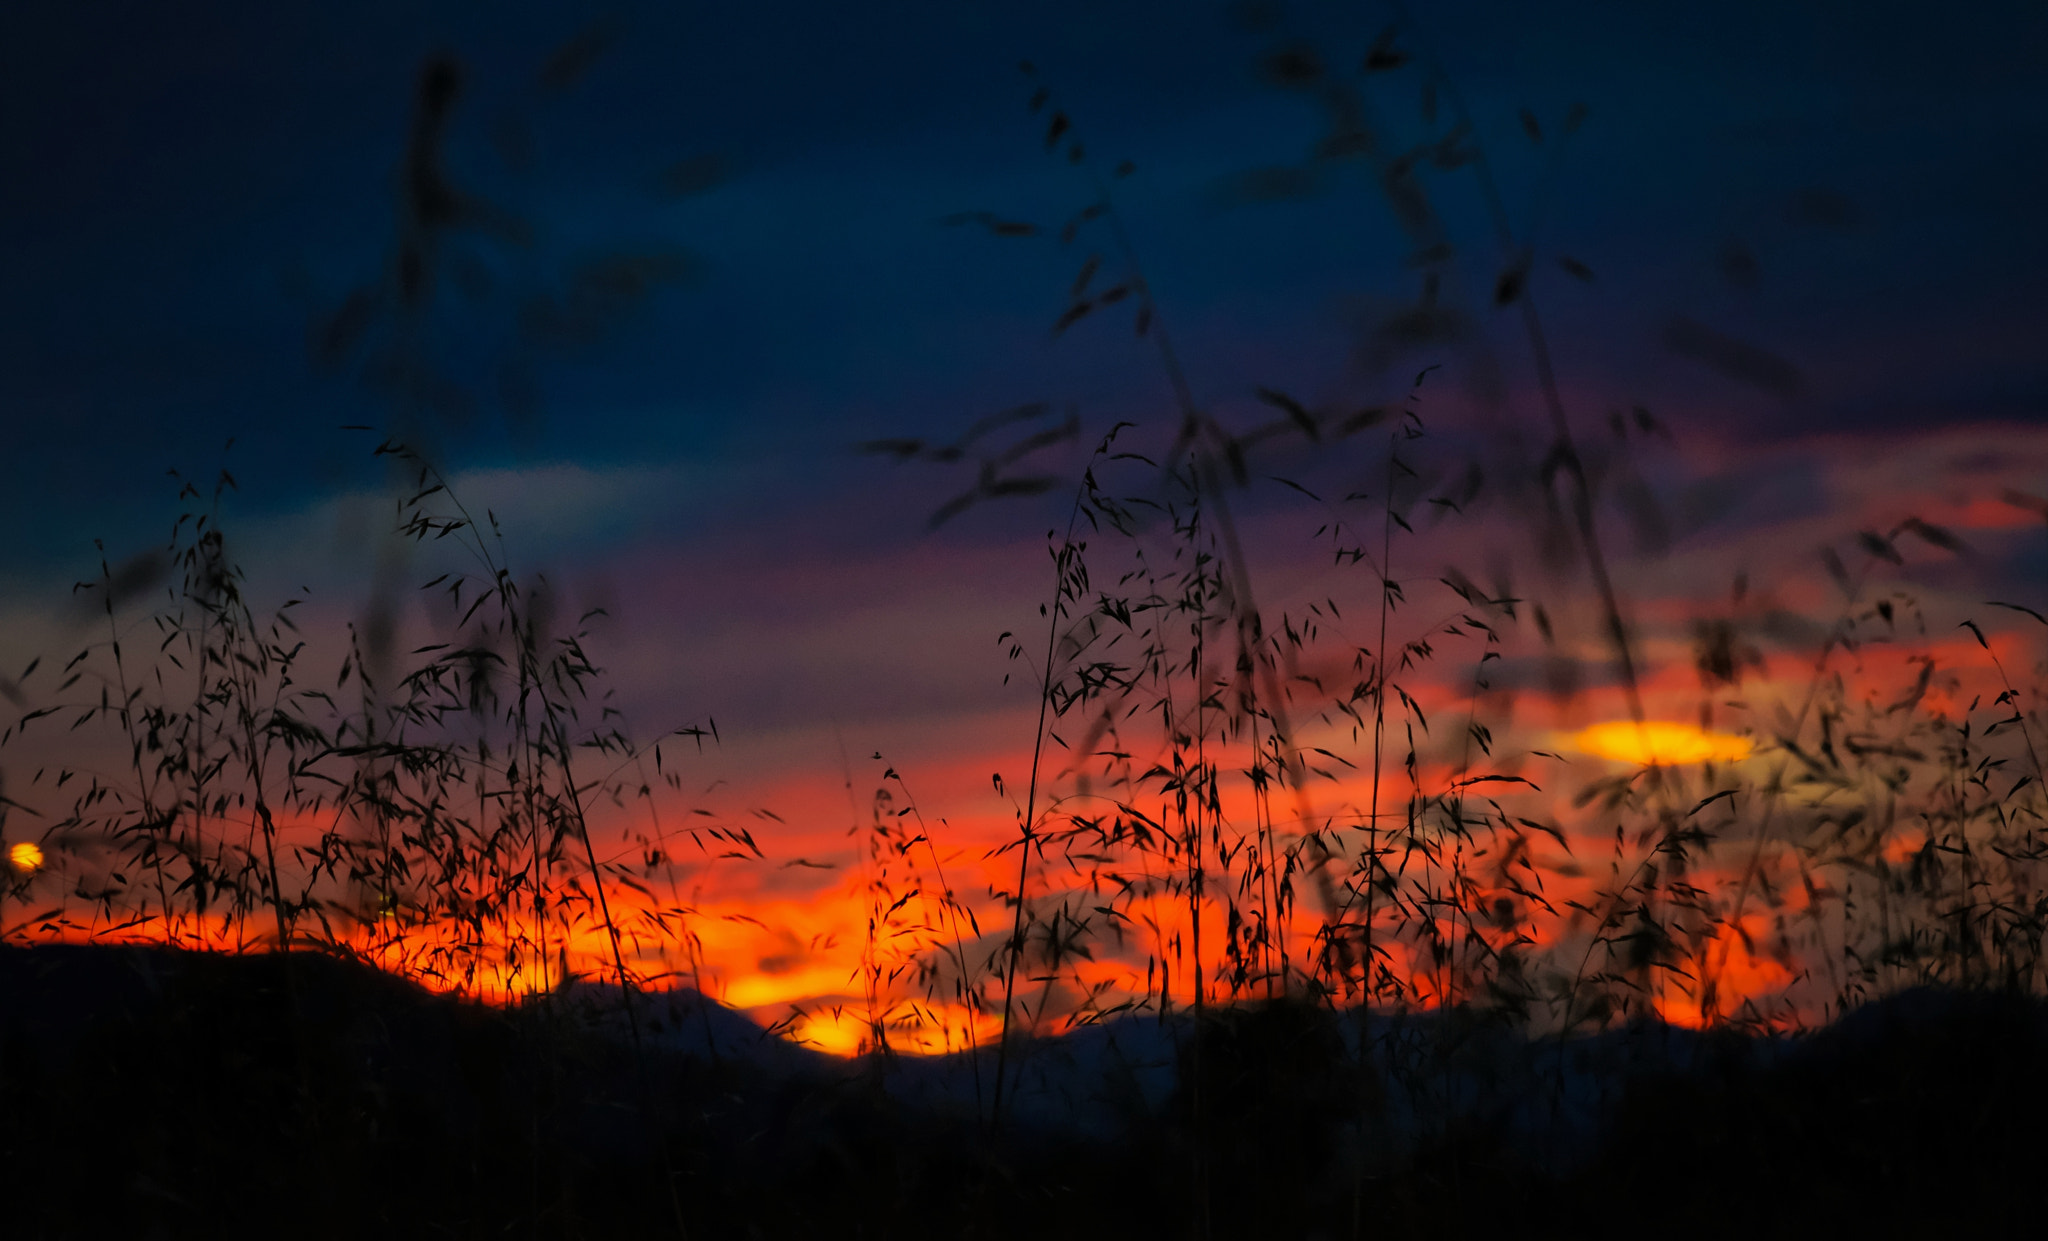 Photograph Against the sunset by Simone Ciliberti on 500px